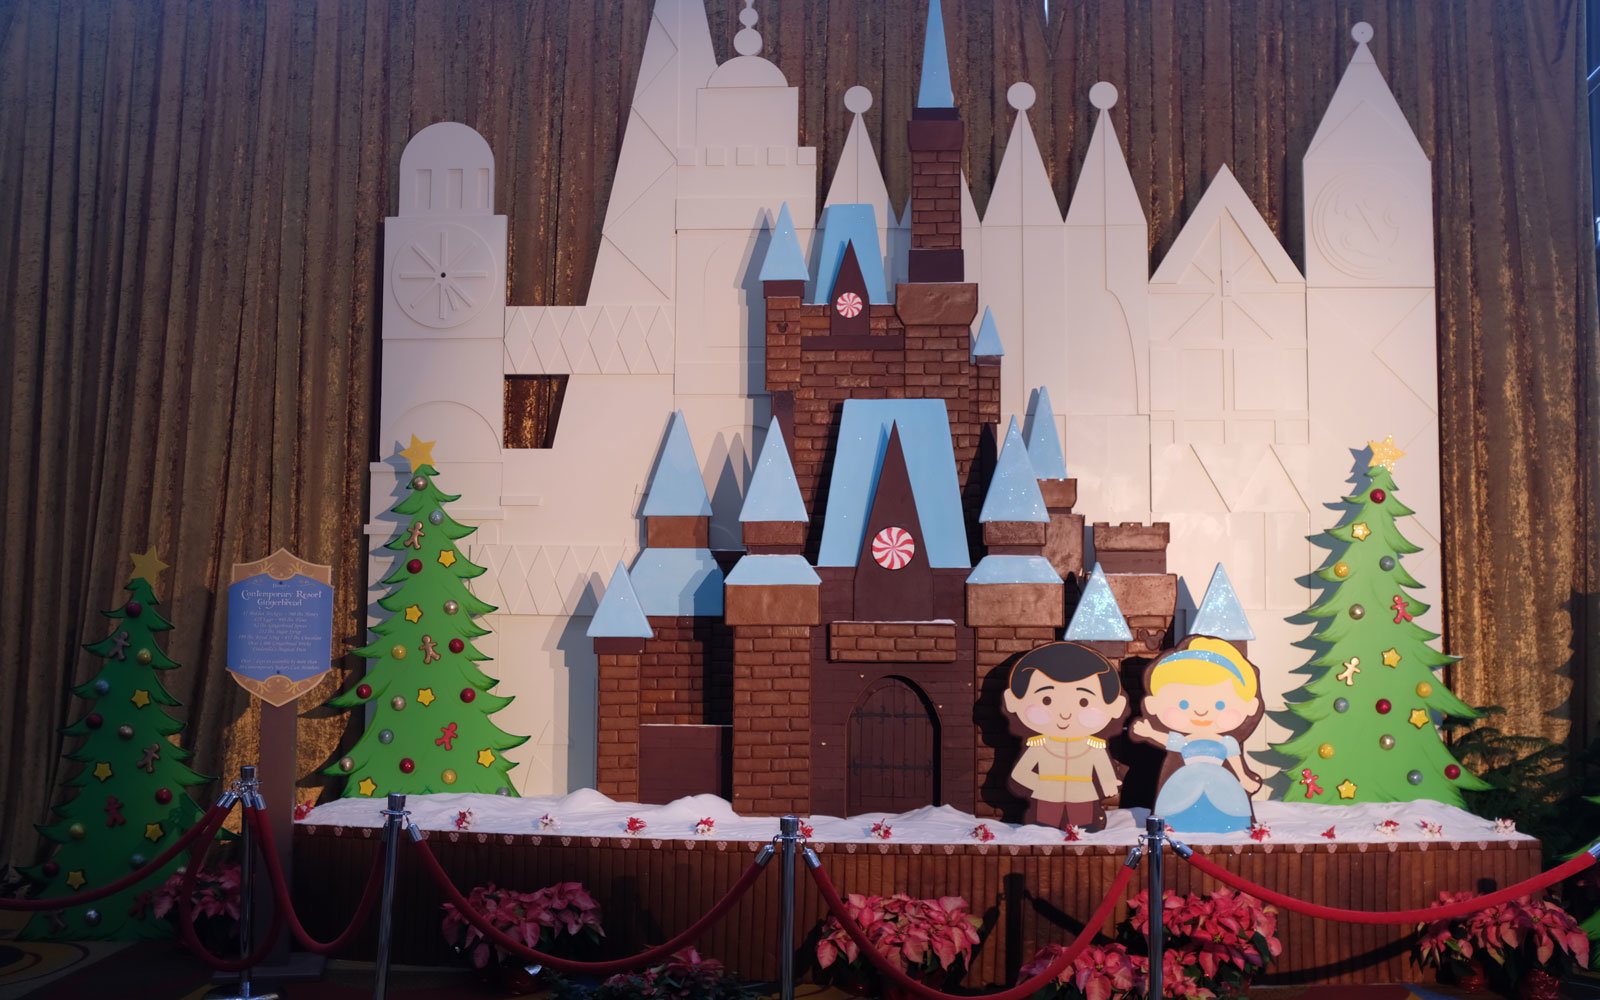 Cinderella castle gingerbread